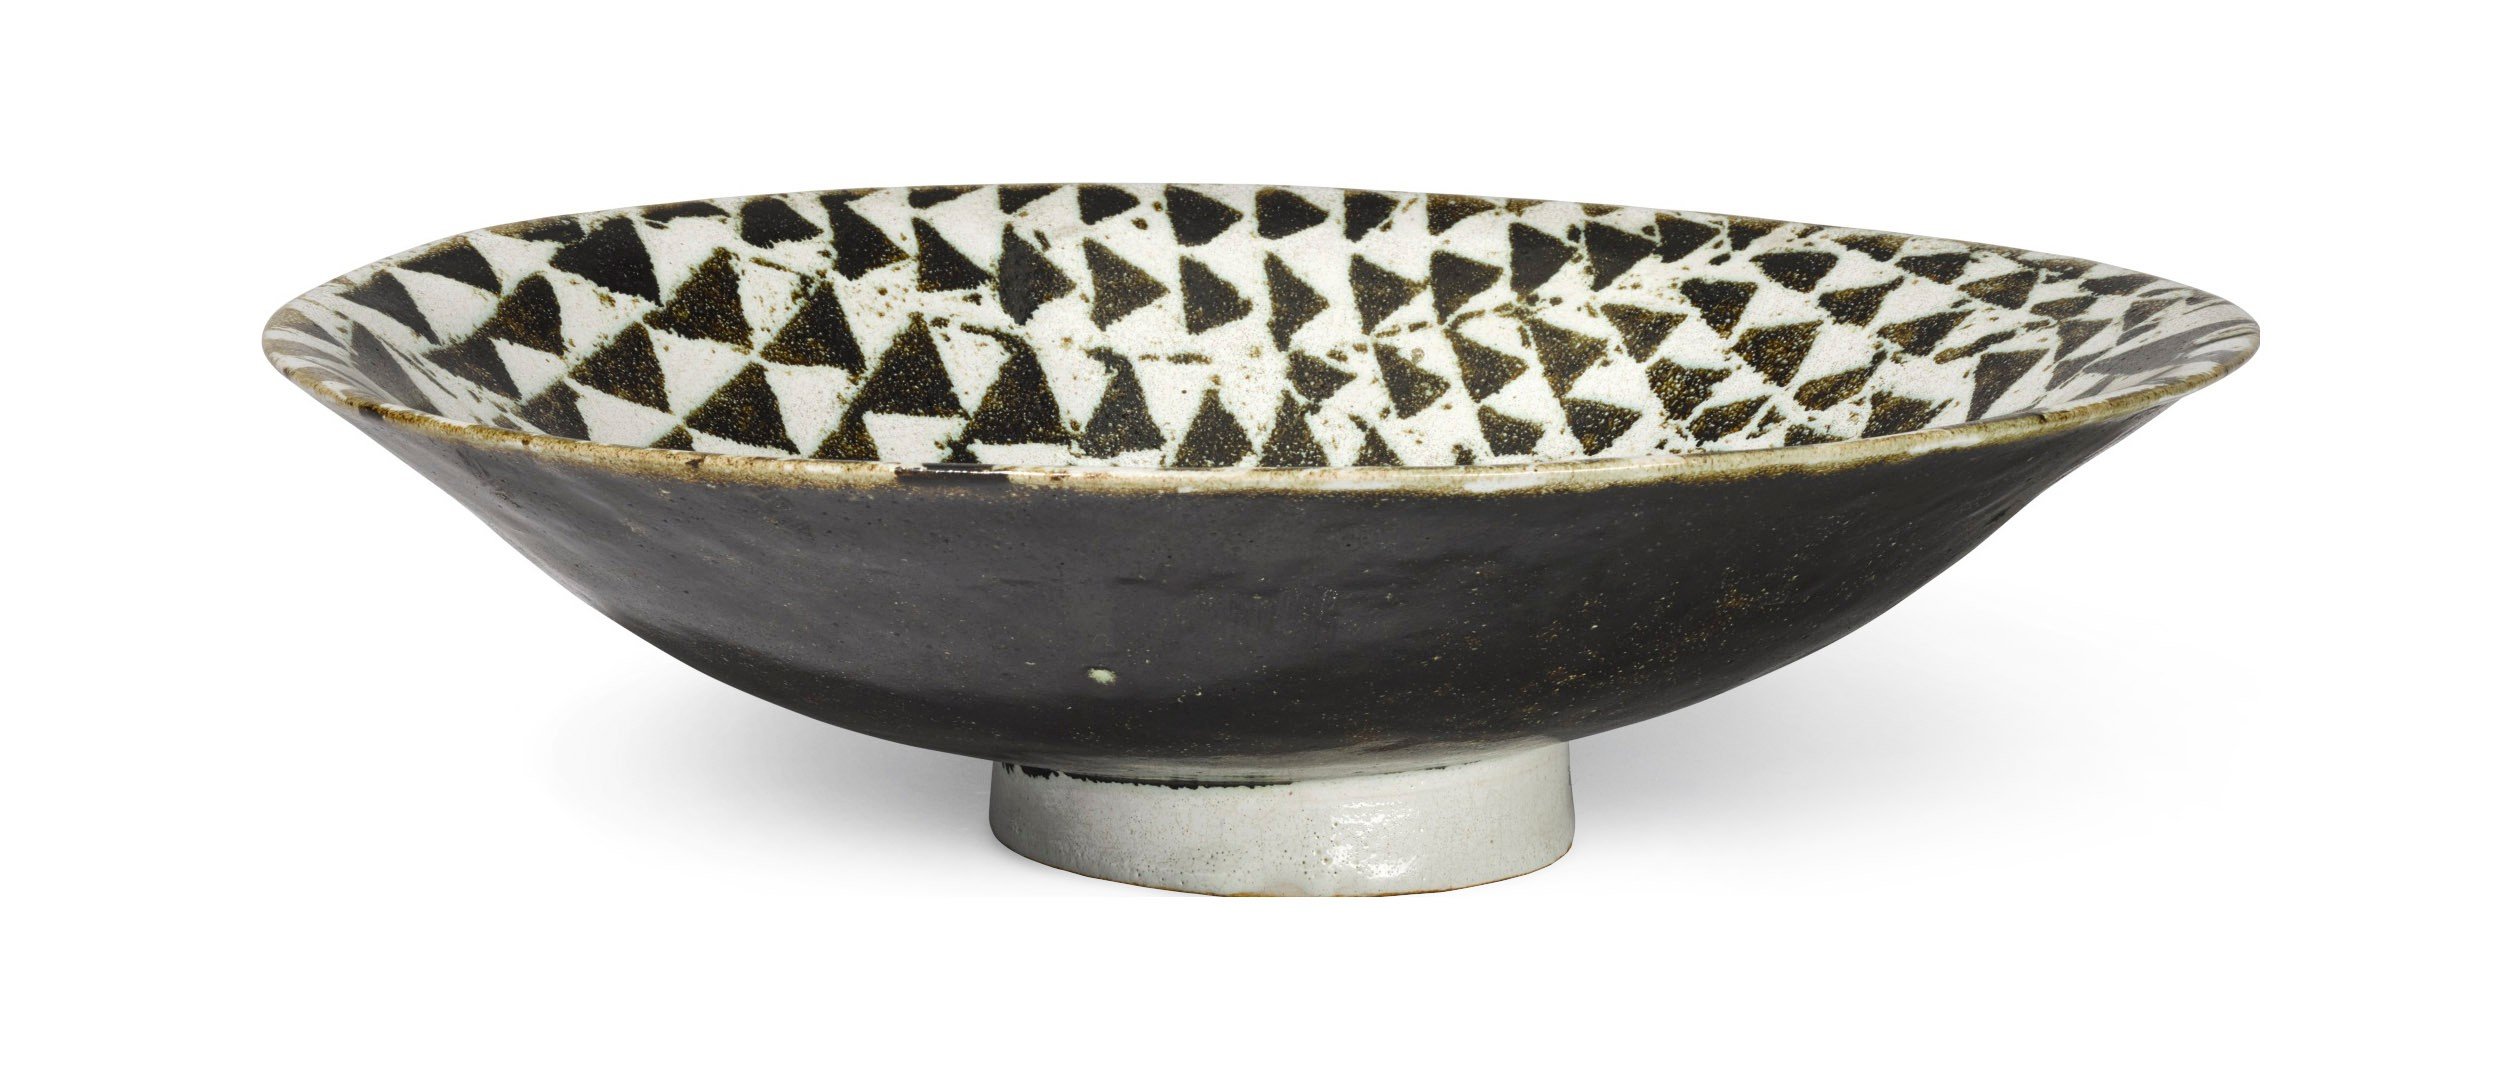 View full screen - View 1 of Lot 205. JAMES TOWER   GREENISH BLACK & WHITE BOWL.